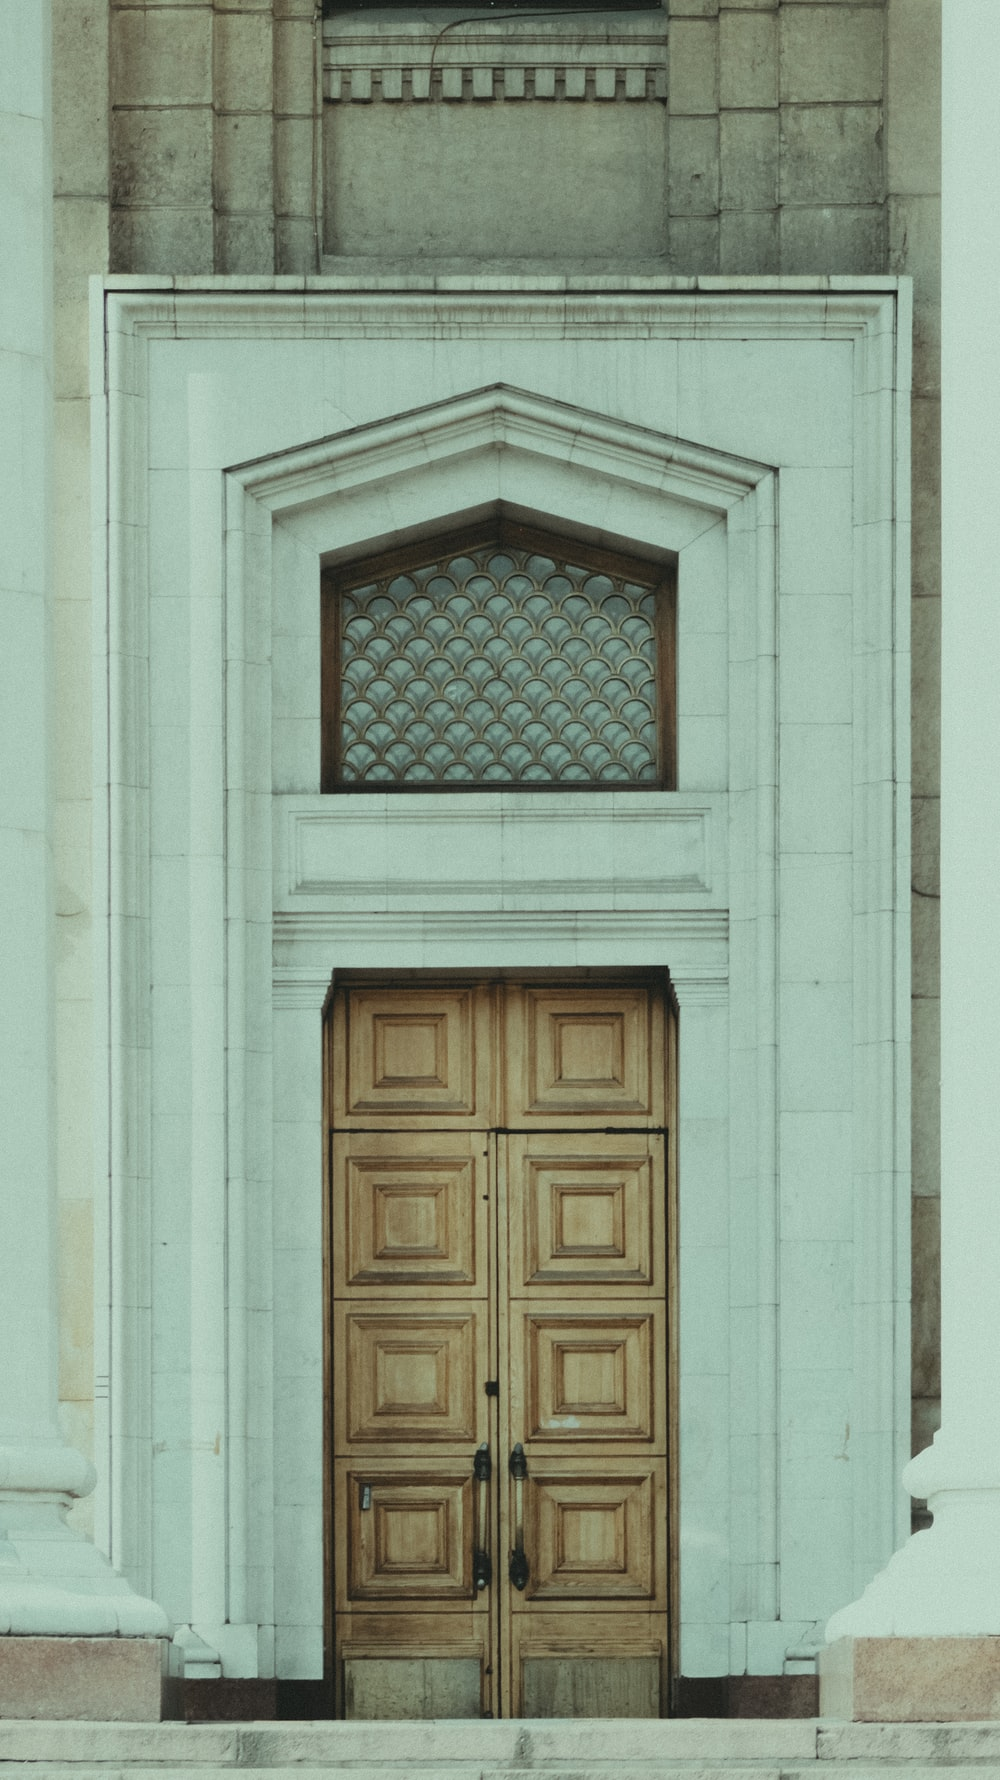 white concrete building showing closed door